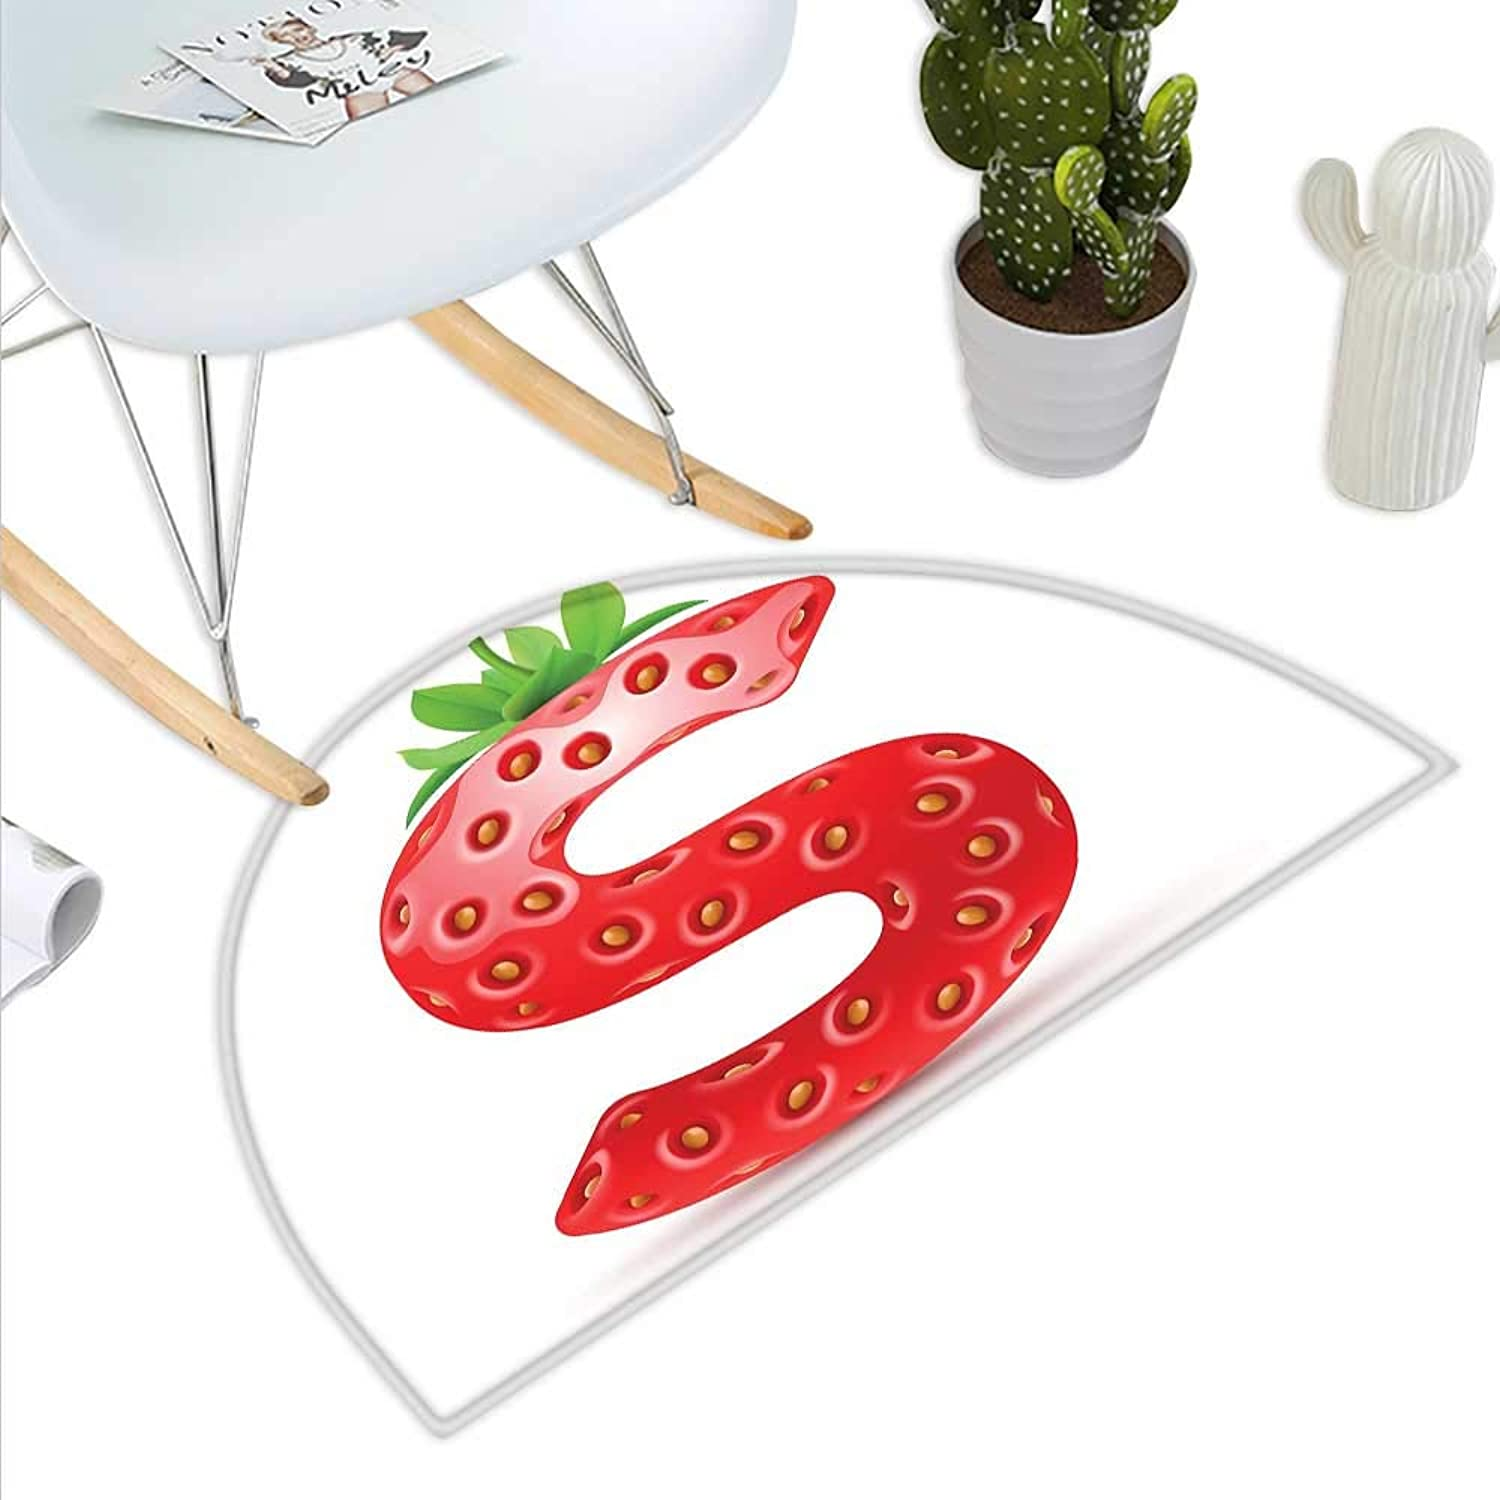 Letter S Semicircle Doormat Capital S Strawberry Seeds and Green Leaves Organic Plant Realistic Halfmoon doormats H 43.3  xD 64.9  Vermilion Green orange